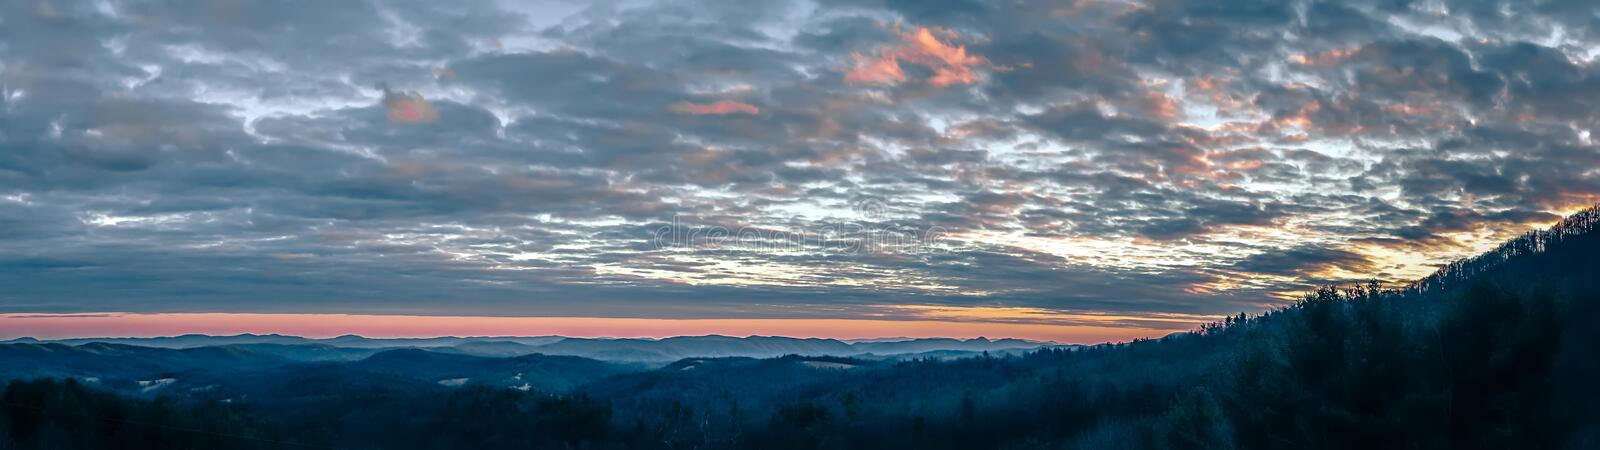 Smoky mountains blue ridge panorama at sunset stock photos